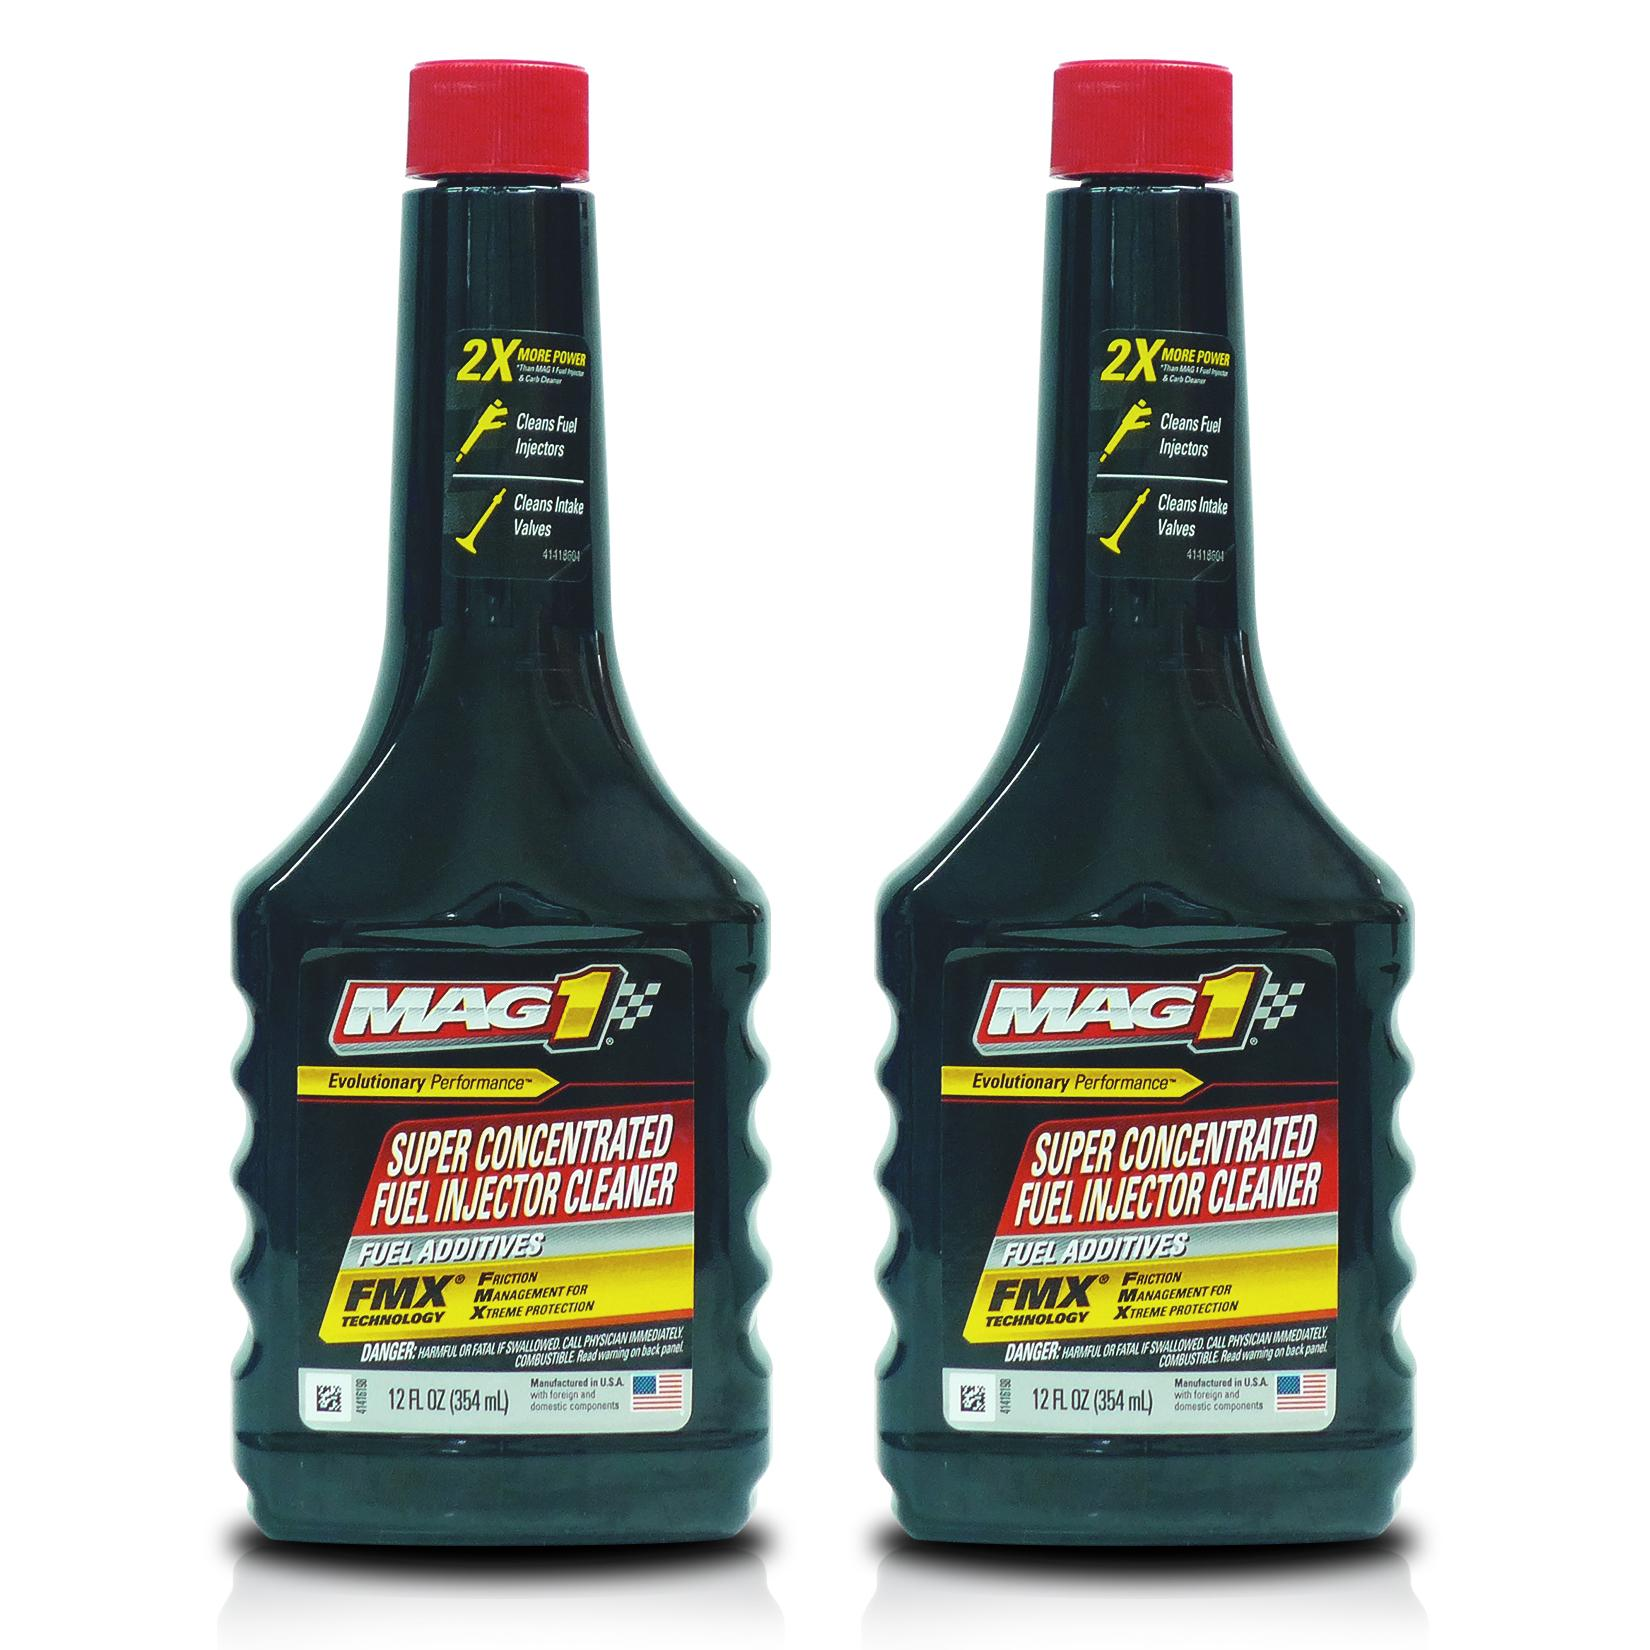 MAG 1 Super Concentrated Fuel Injector Cleaner 12oz (354ml) PN 147 (Pack of  2)